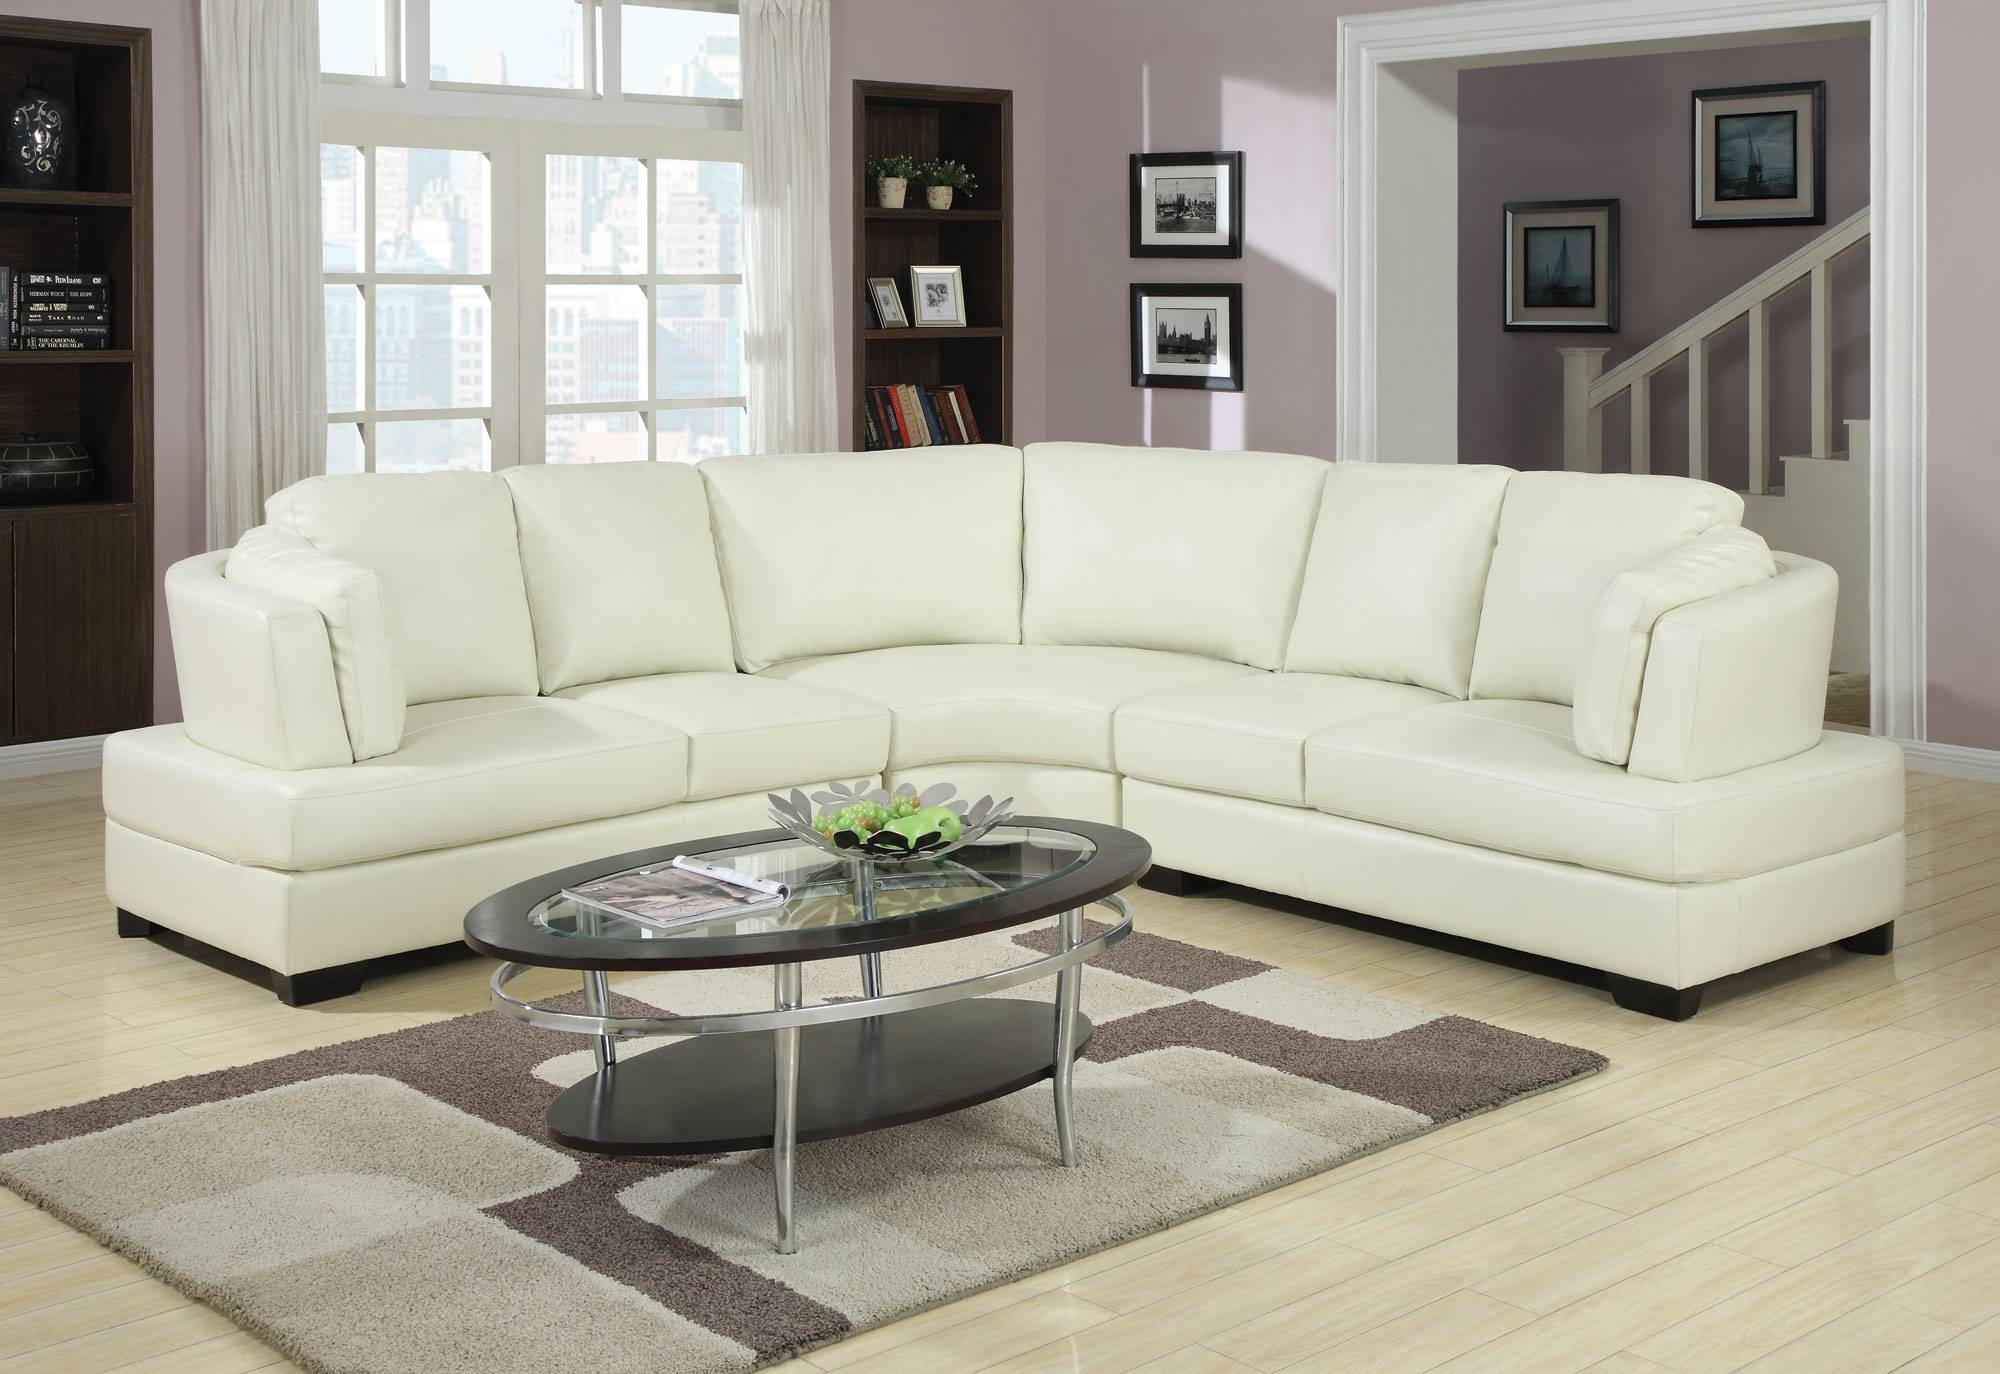 Conversation Sofa Sectional - Artenzo inside Conversation Sofa Sectional (Image 8 of 30)